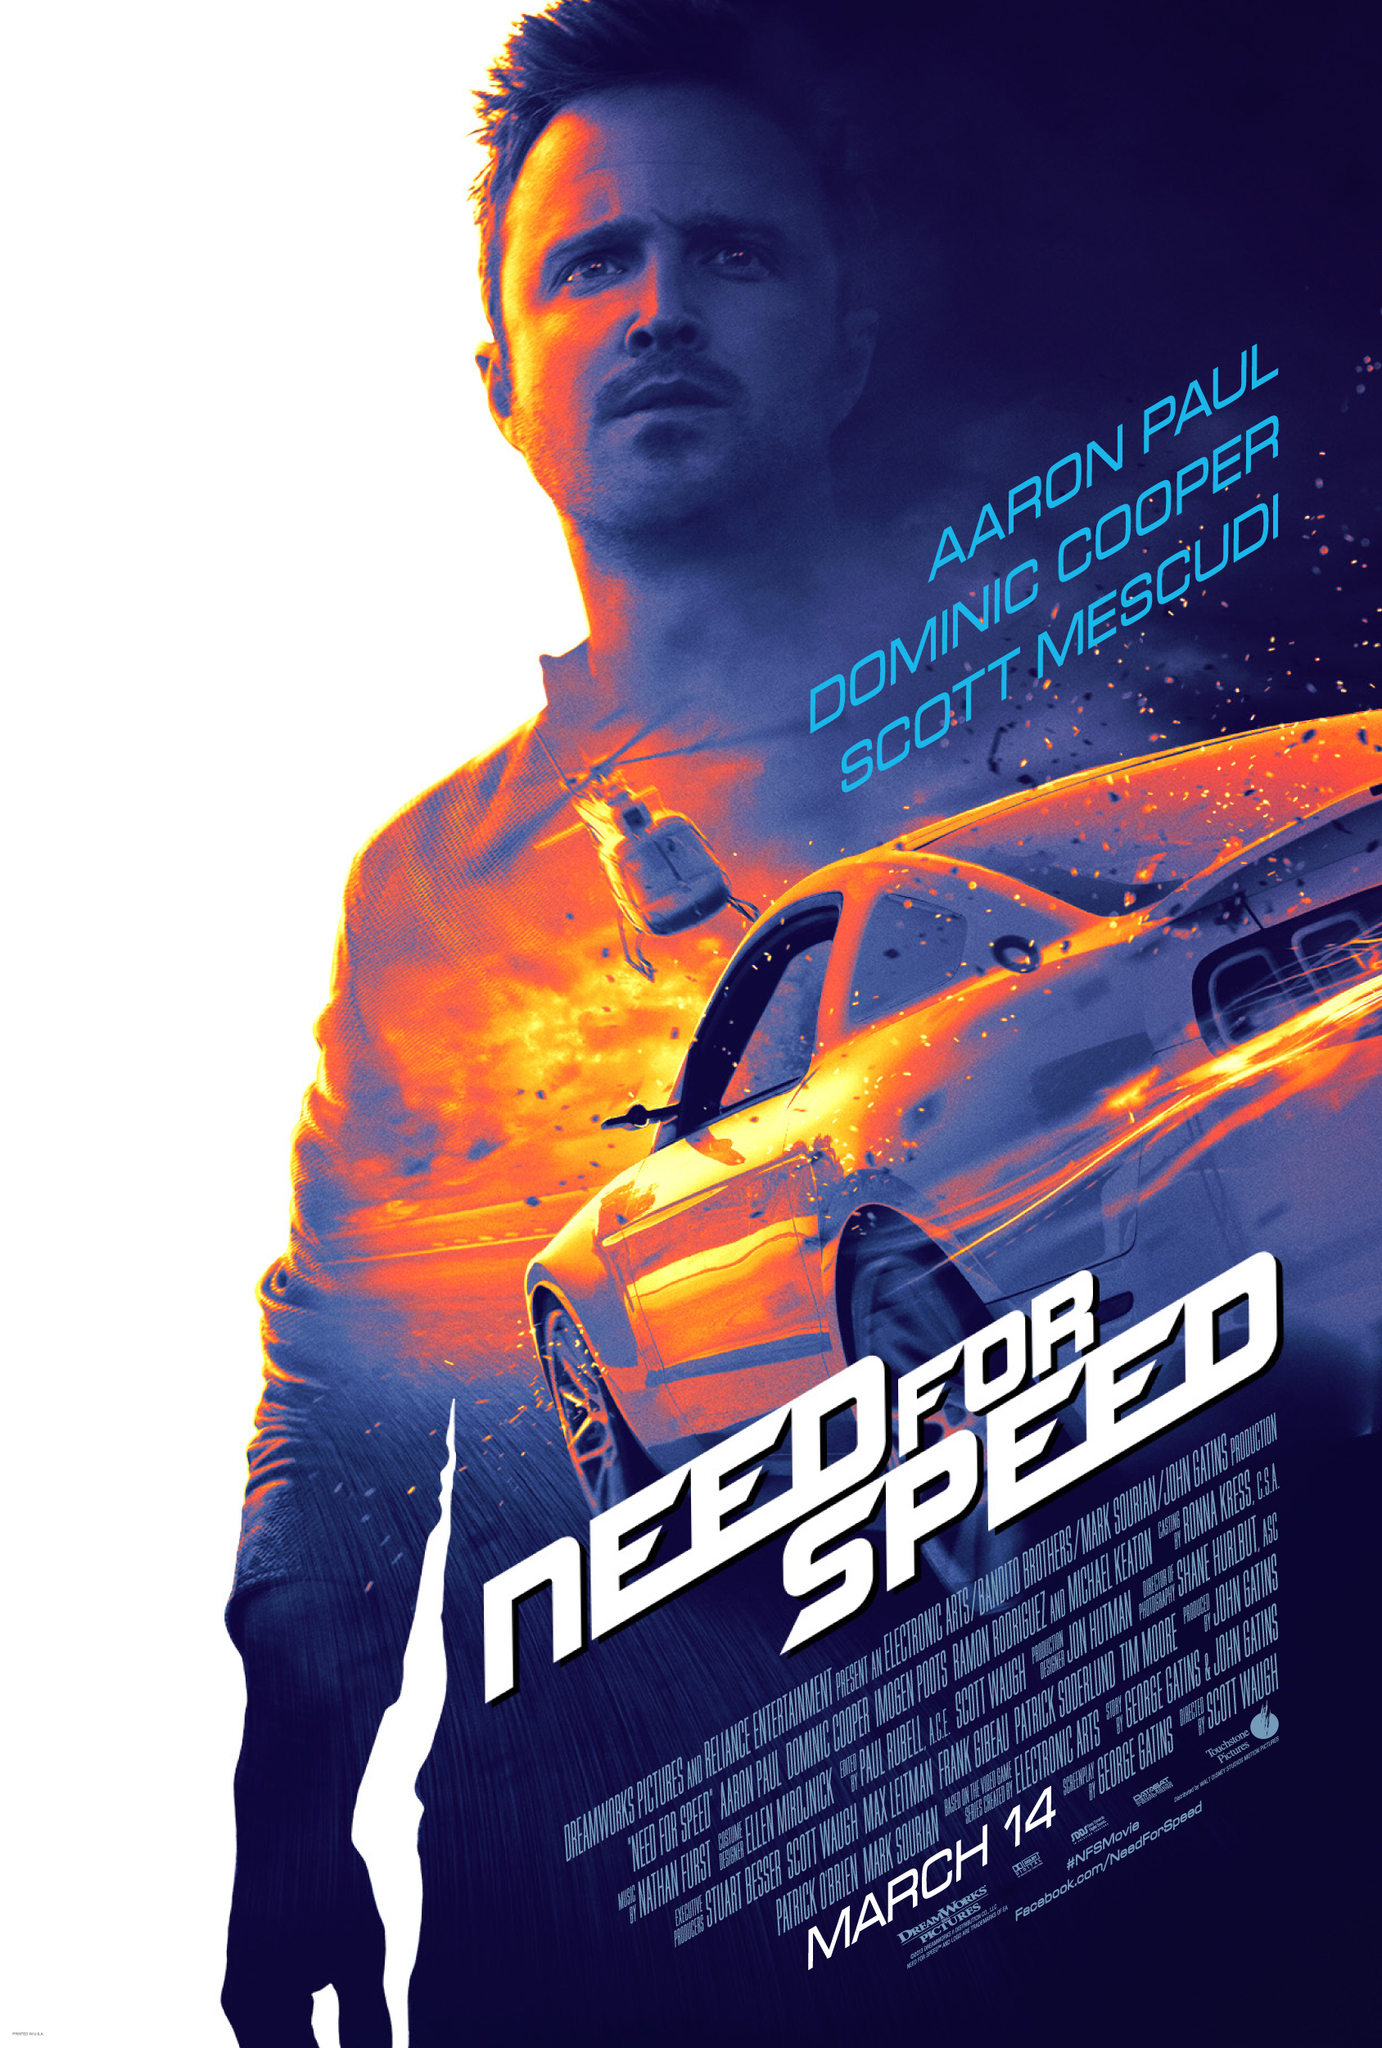 need for speed movie in english free download